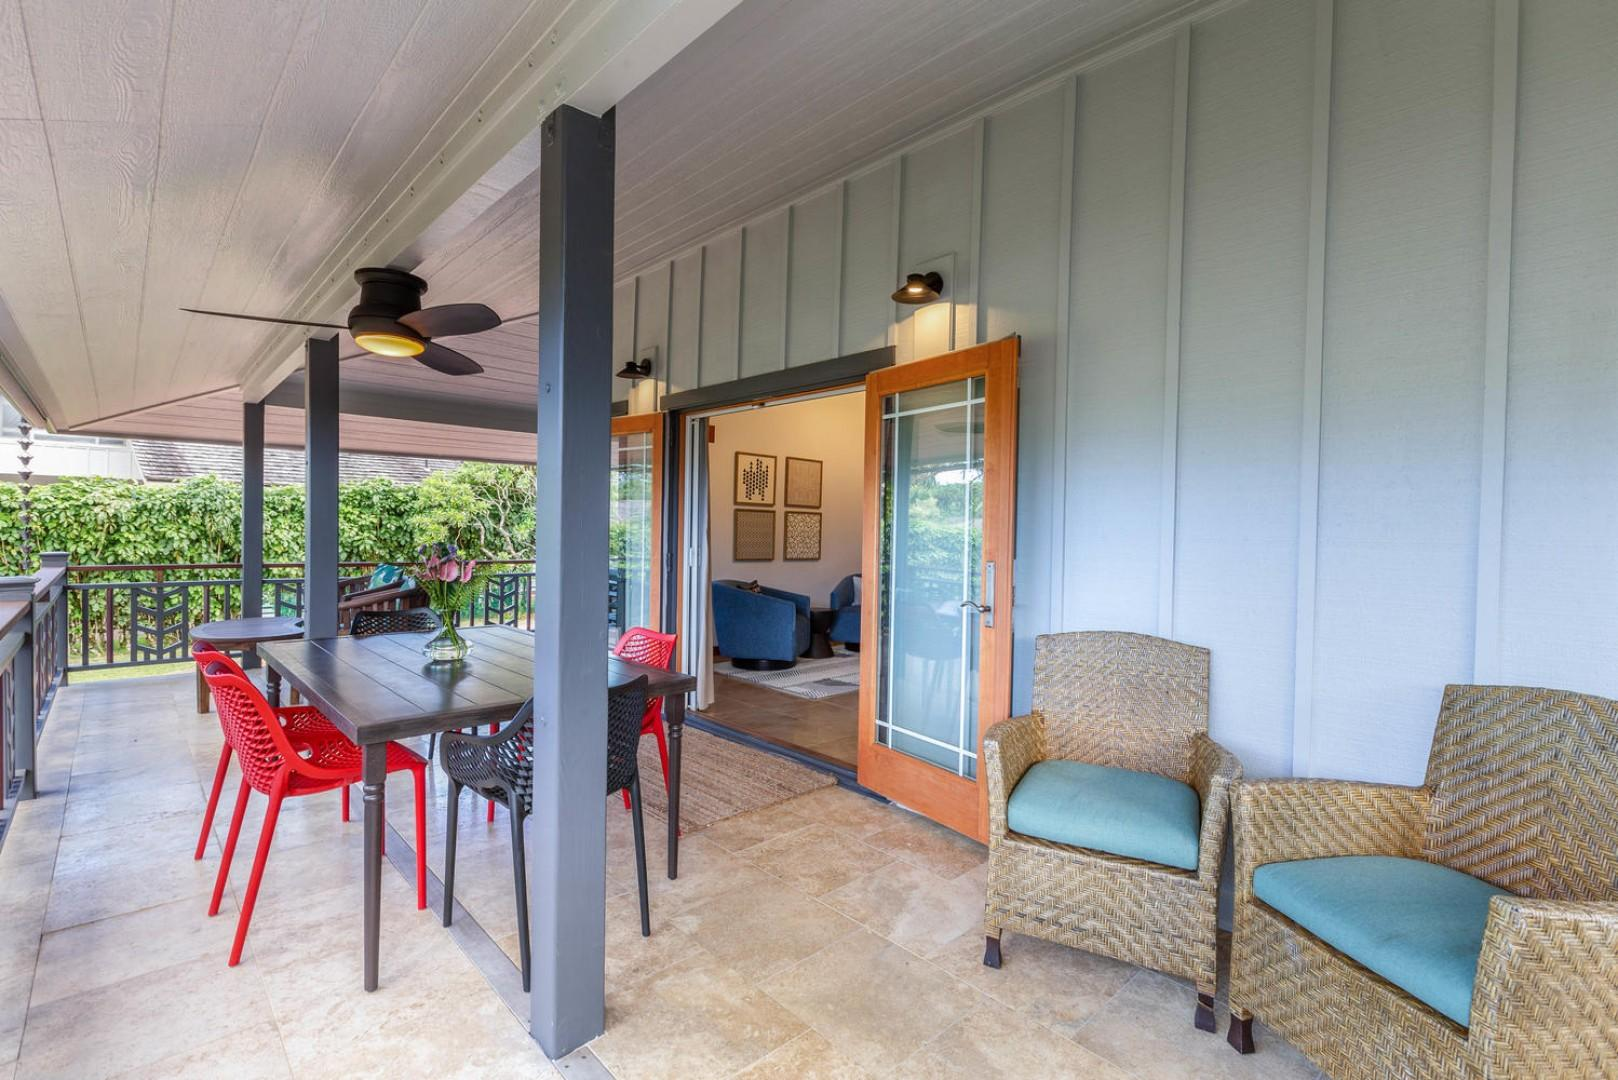 Covered lanai with places to dine and relax